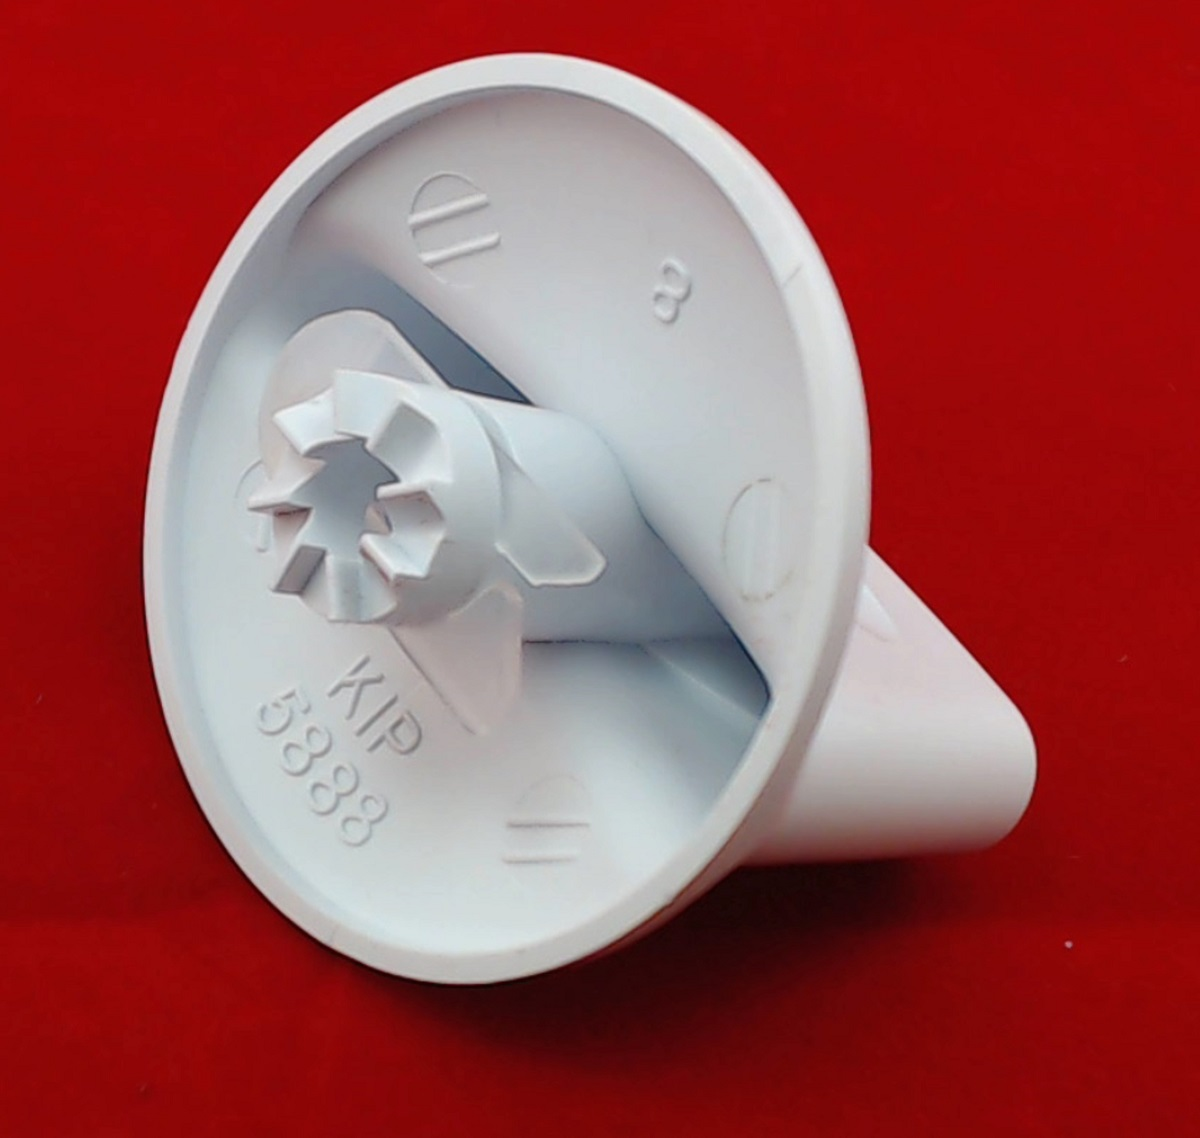 Wh1x2754 Timer Knob For General Electric